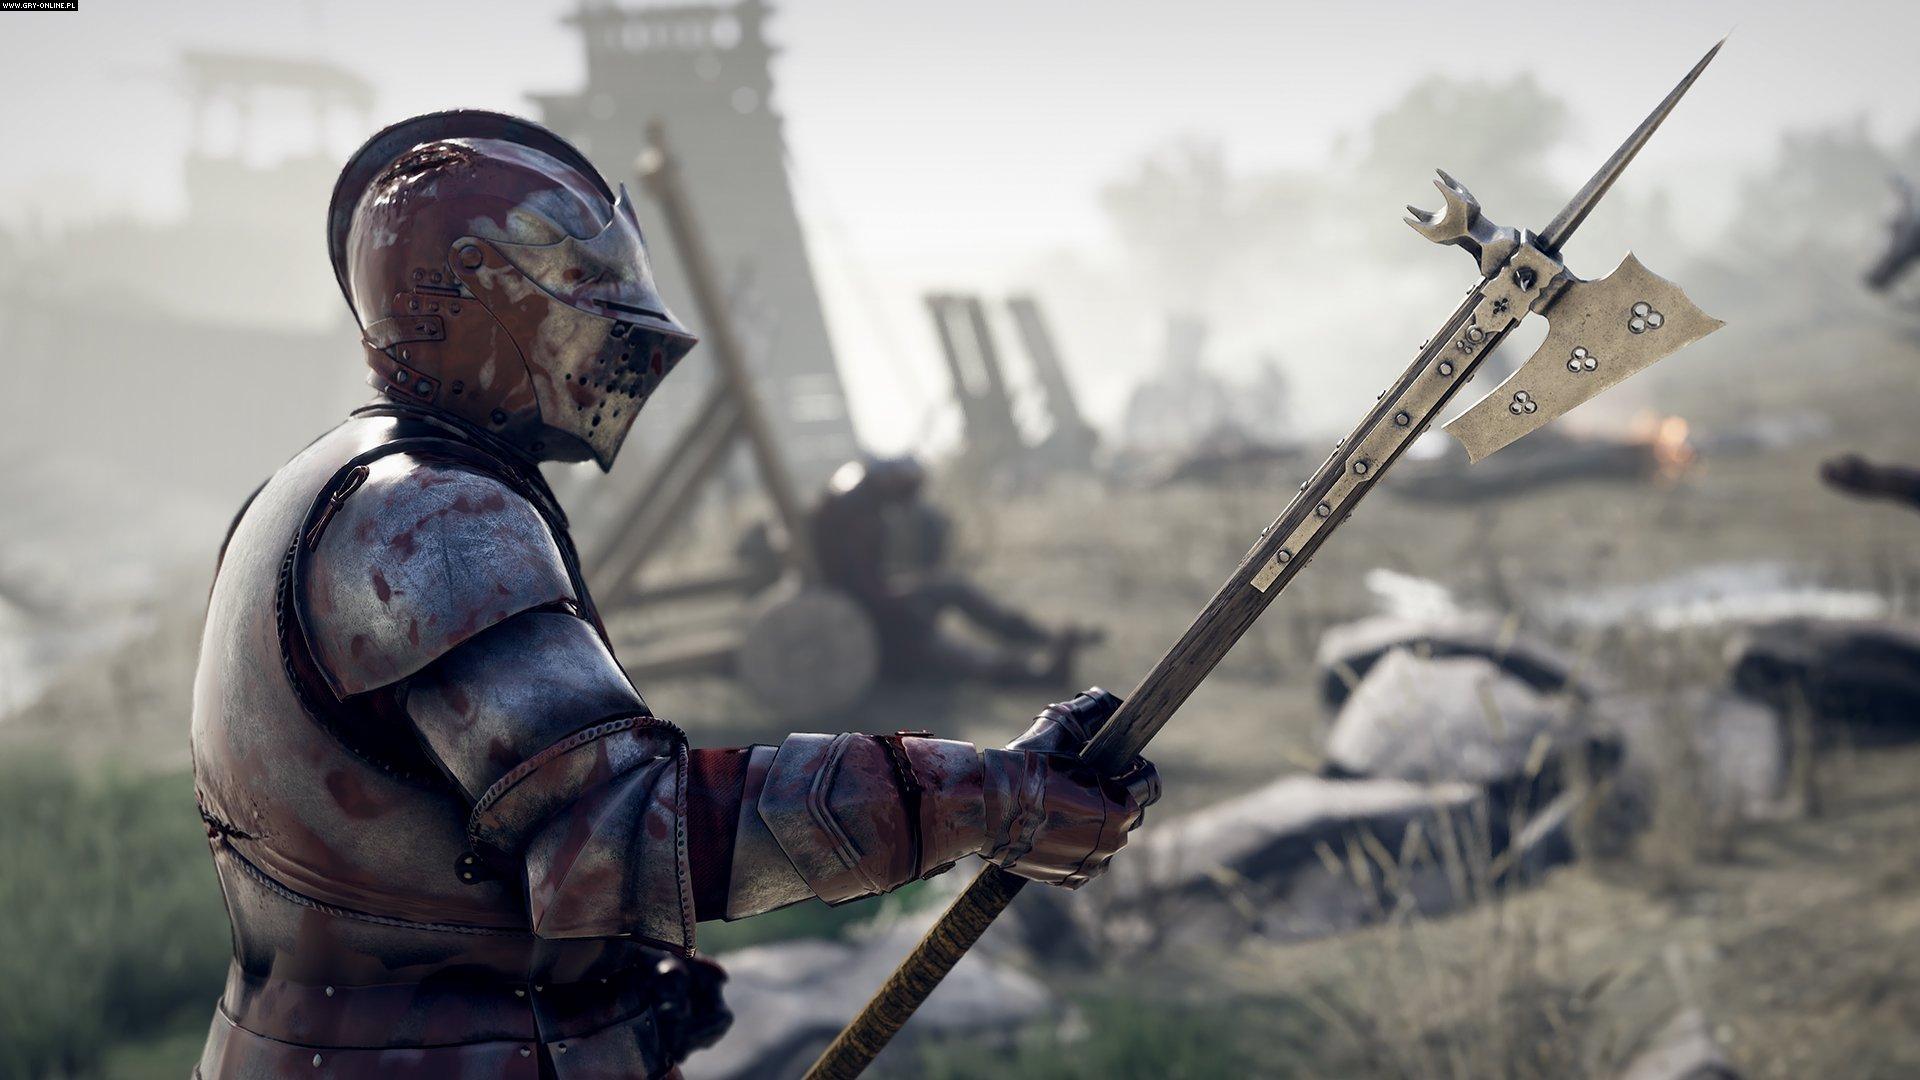 Mordhau PC Games Image 5/20, Triternion